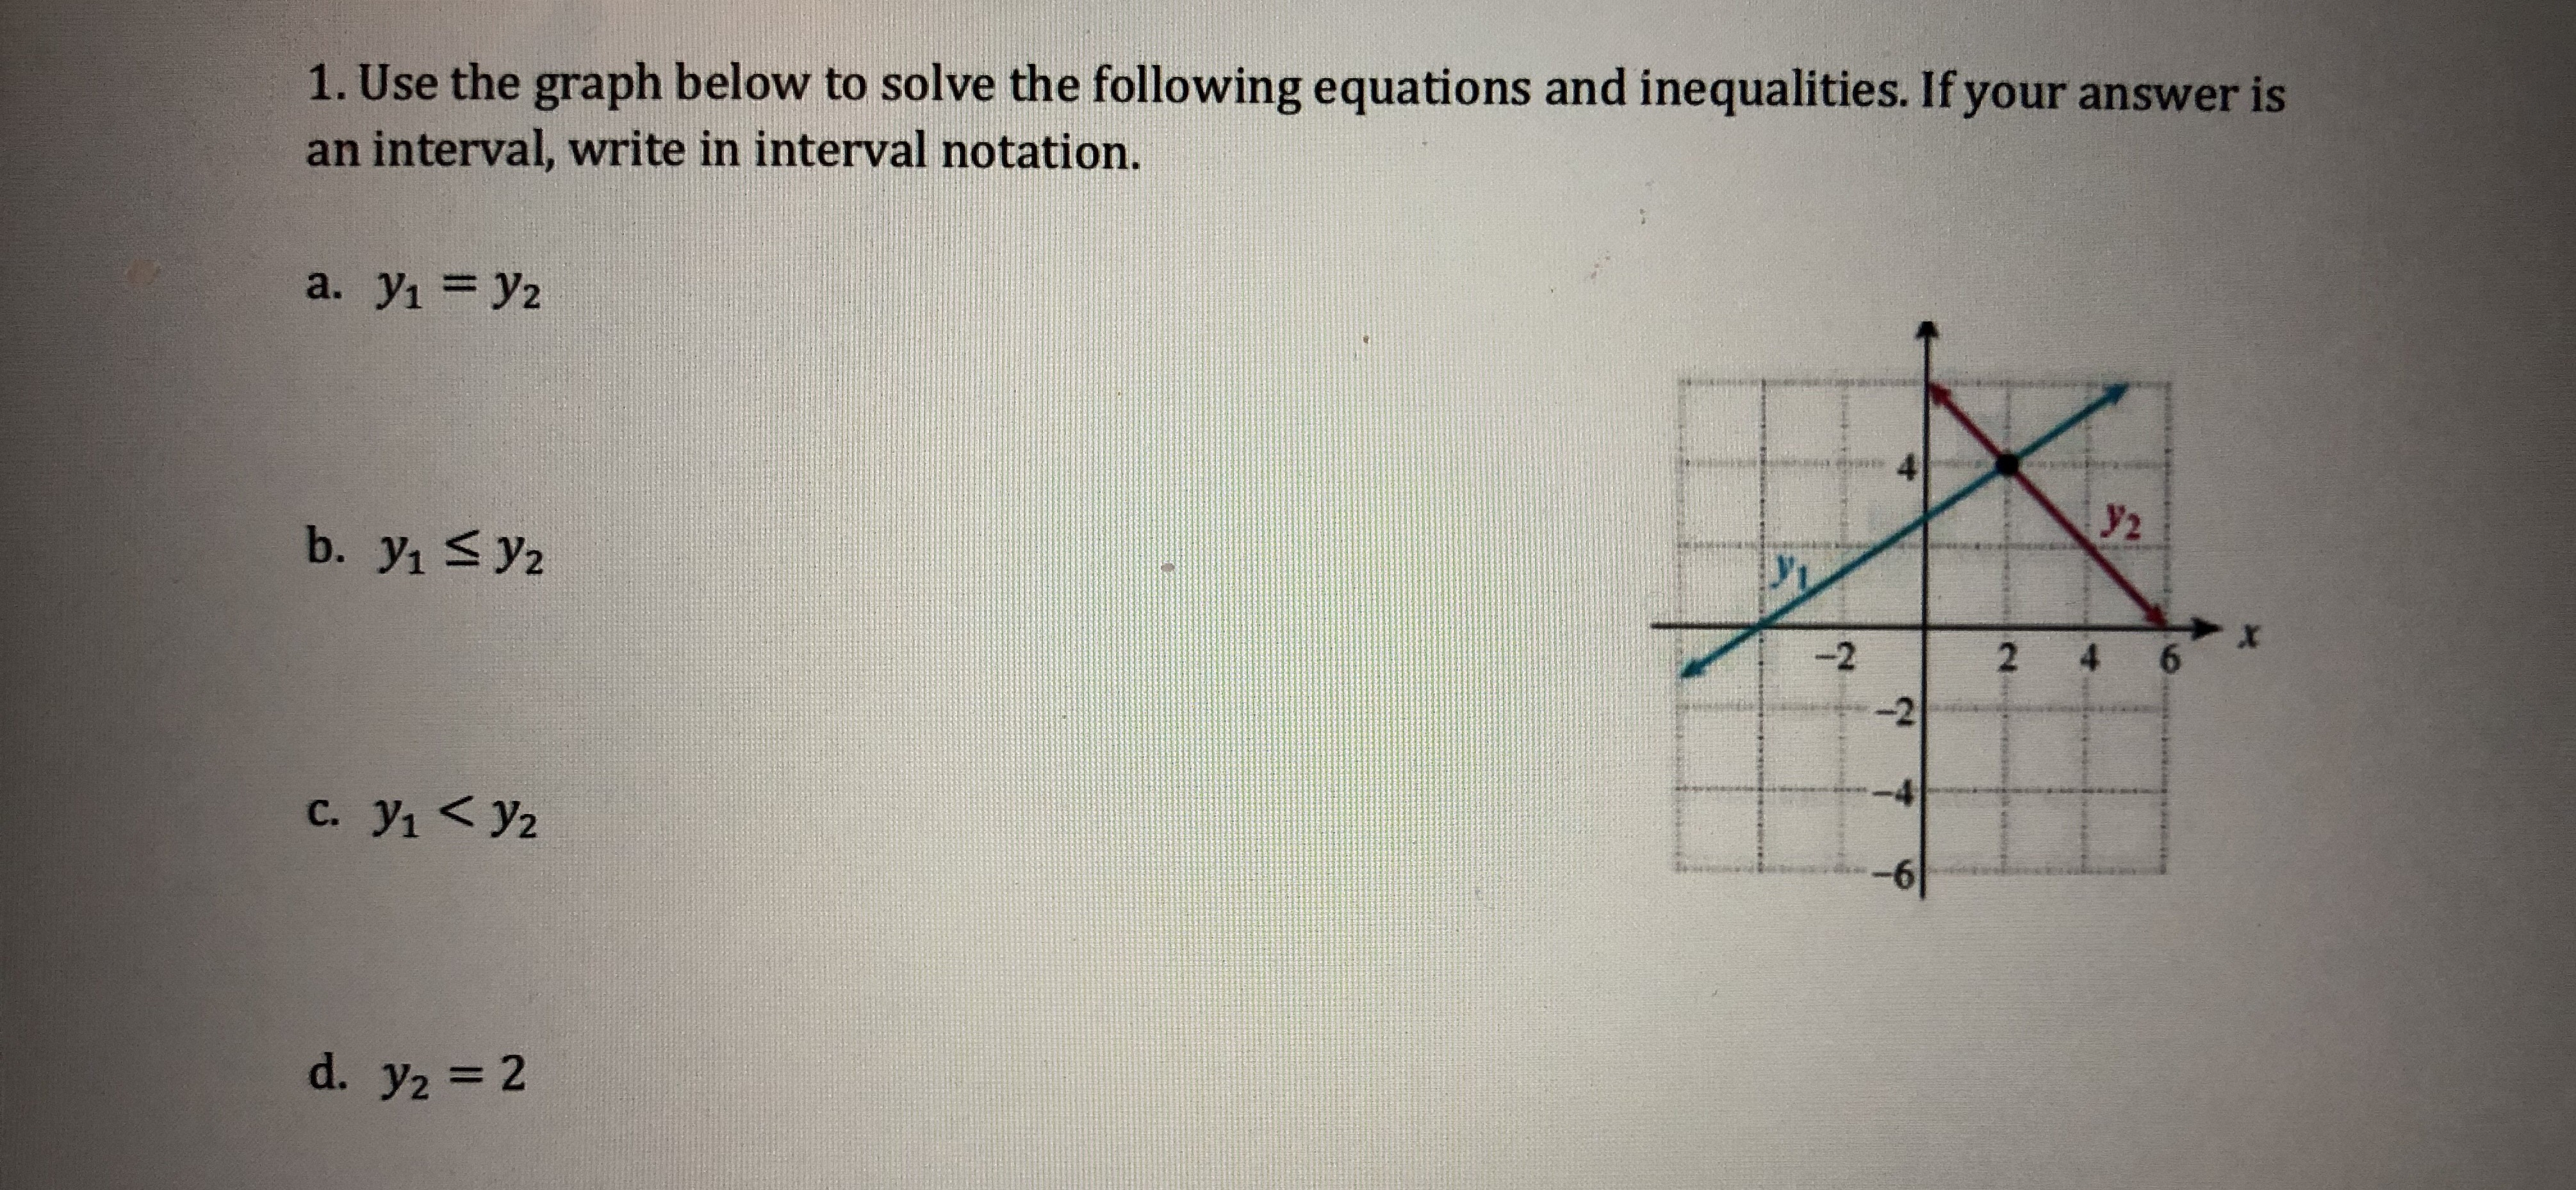 1. Use the graph below to solve the following equations and inequalities. If your answer is an interval, write in interval notation. y2 2 -2 -4 -6 C. yi y2